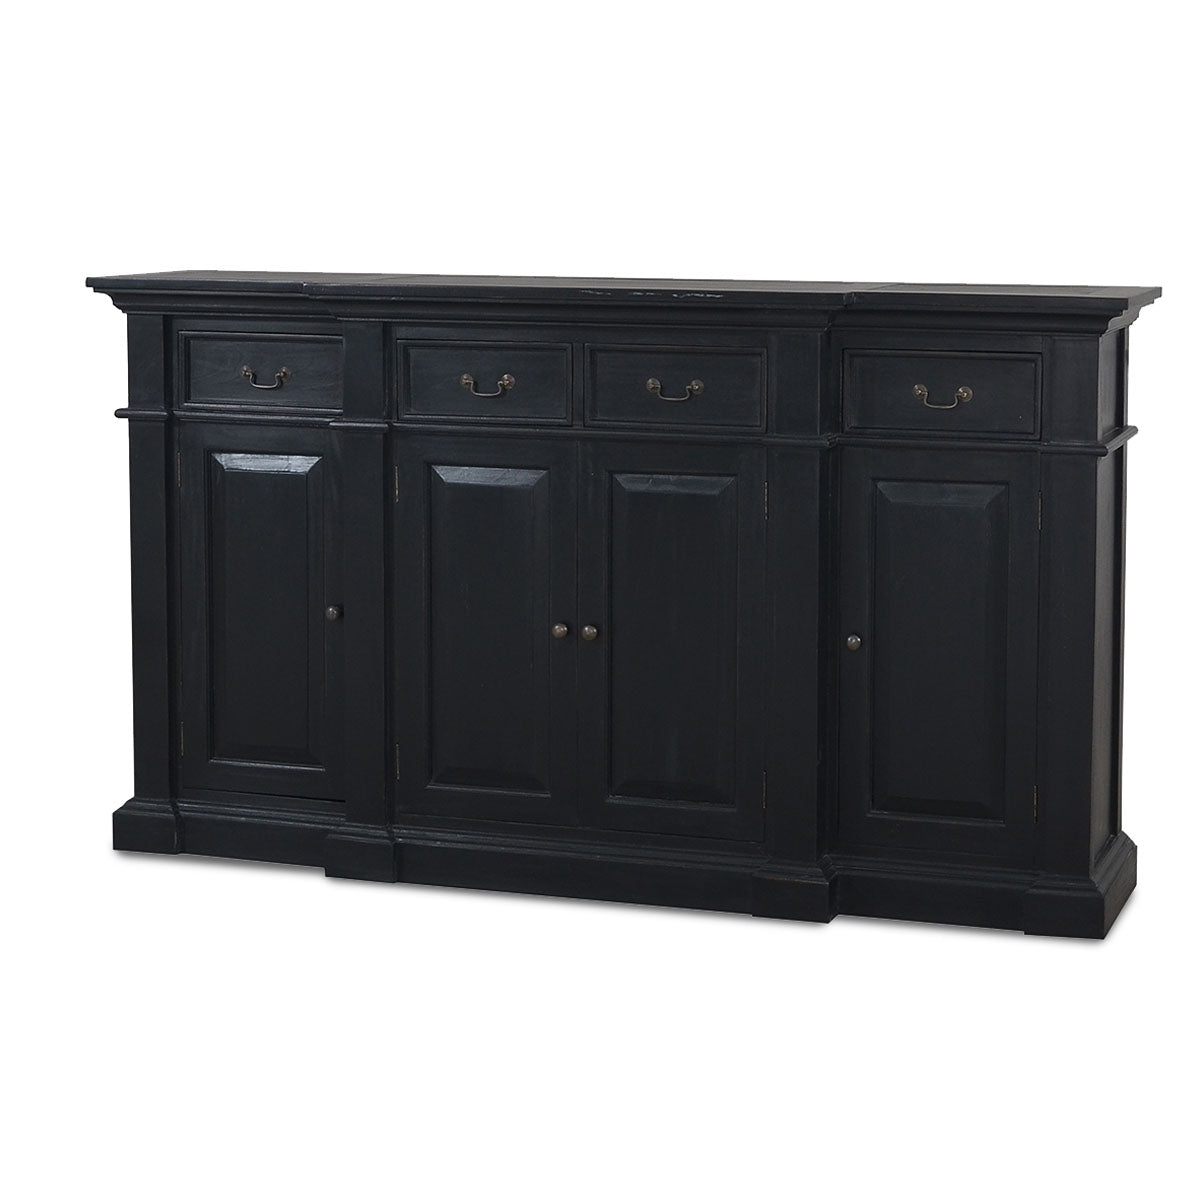 Stepped Front Buffet Black Distressed